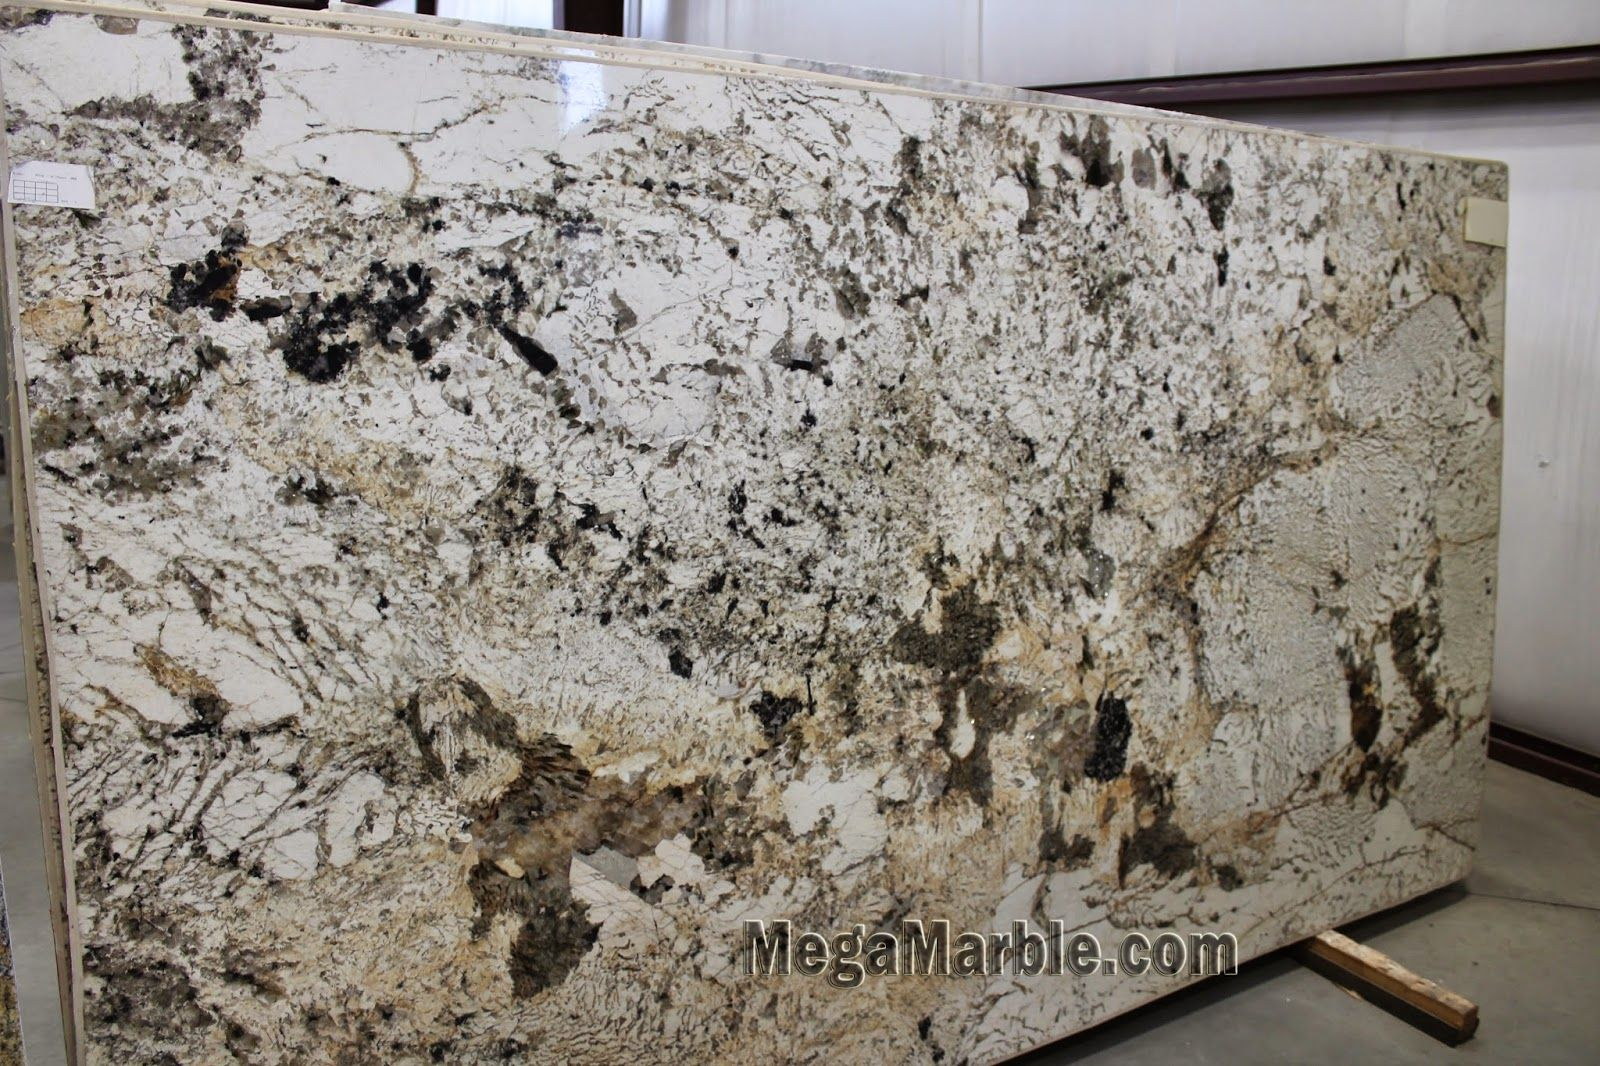 Granite Countertop Slabs New Granite And Marble Slab Arrivals In